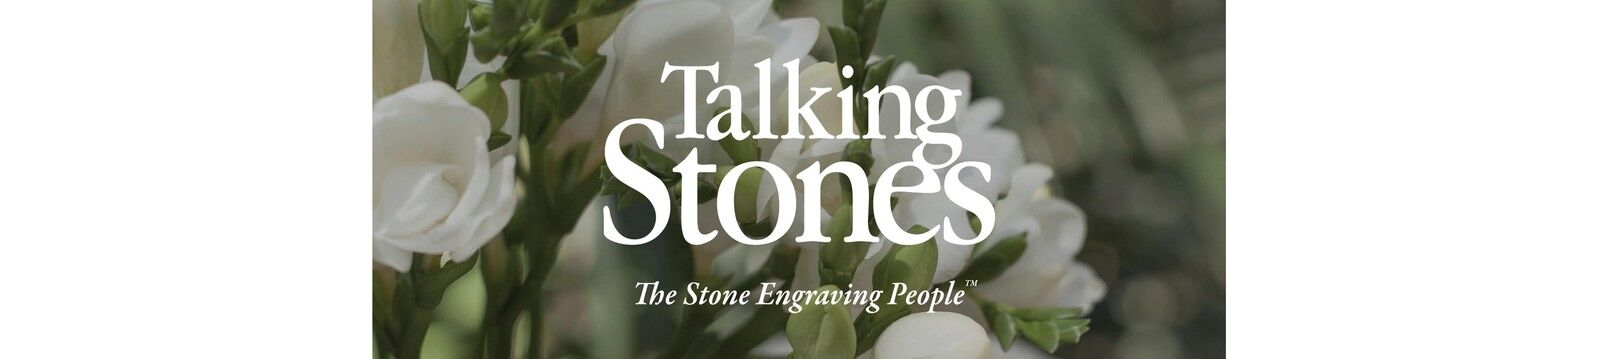 TalkingStones The Engraving People